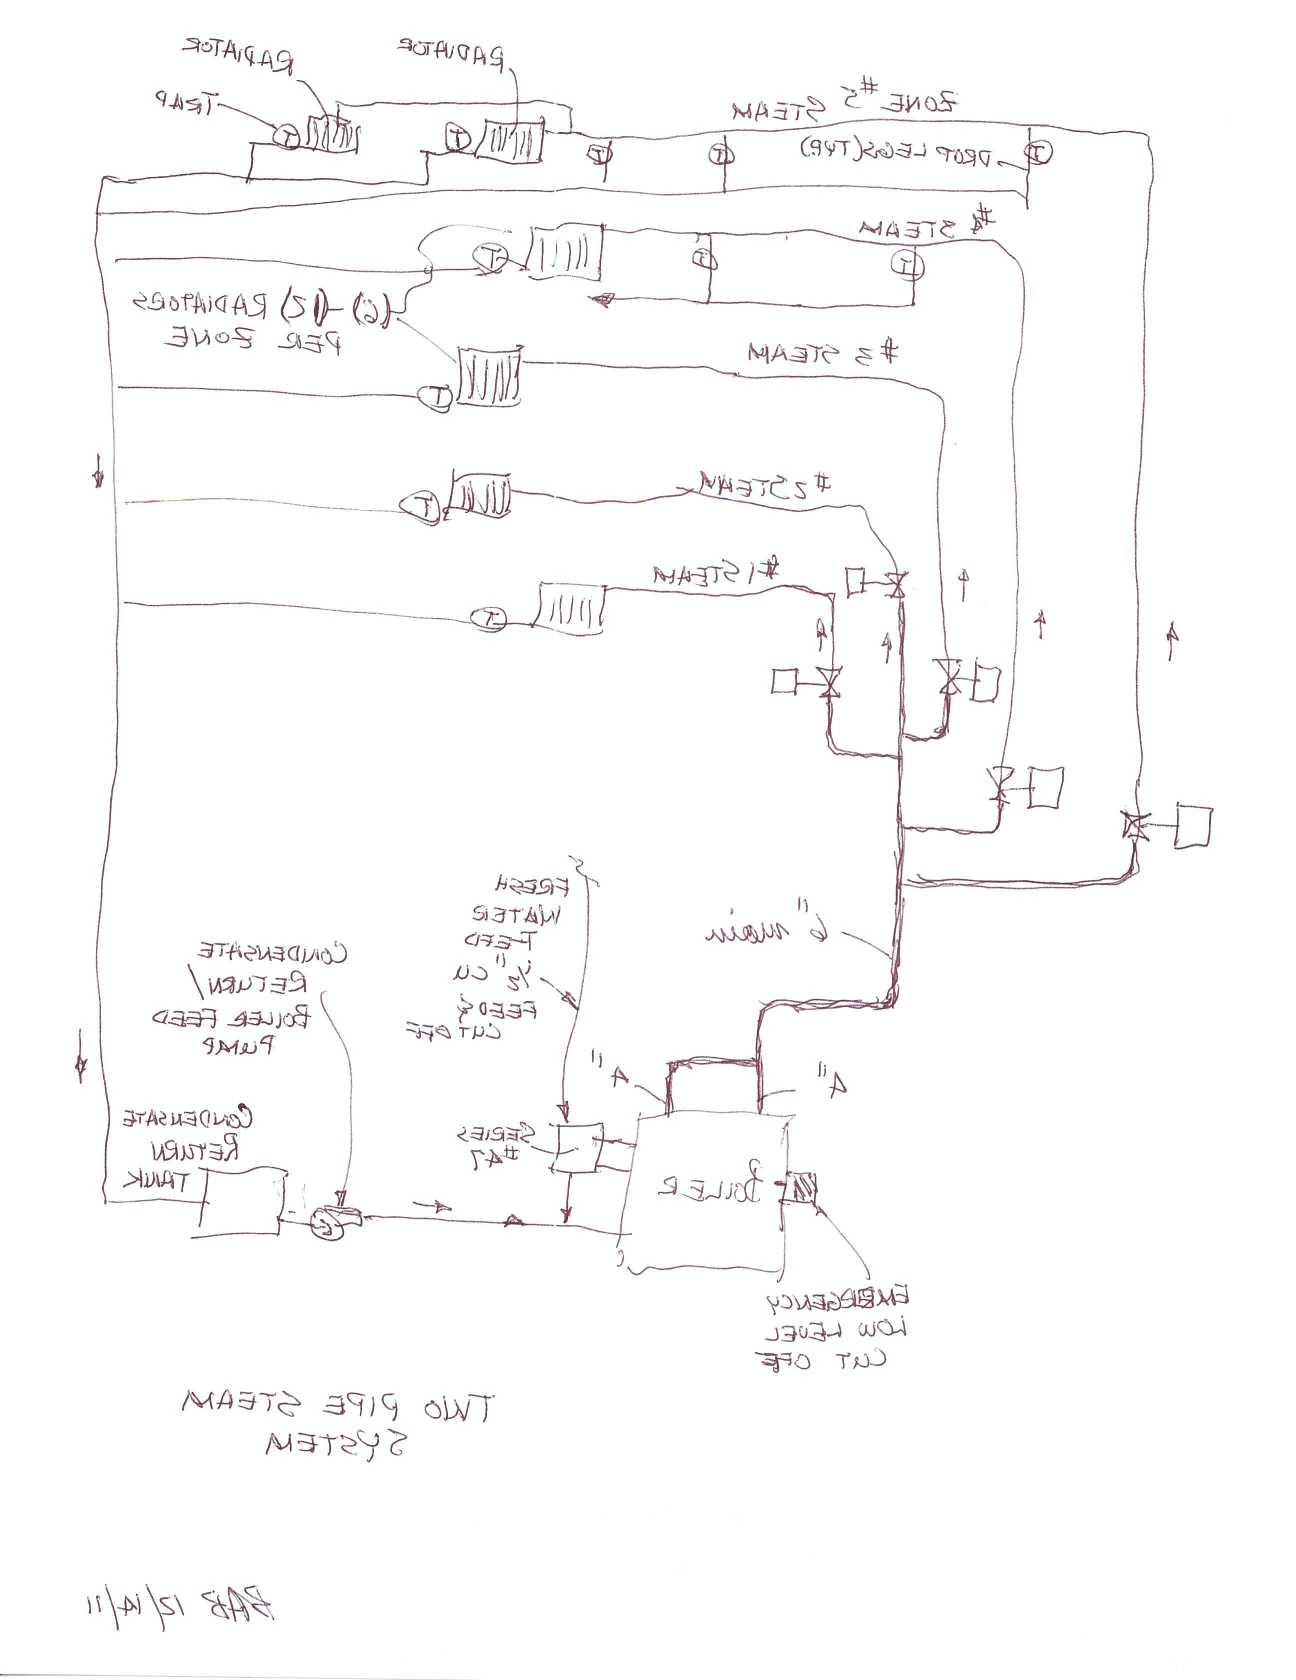 Mcdonnell Miller 67 Wiring Diagram | Schematic Diagram - Mcdonnell Miller Low Water Cutoff Wiring Diagram